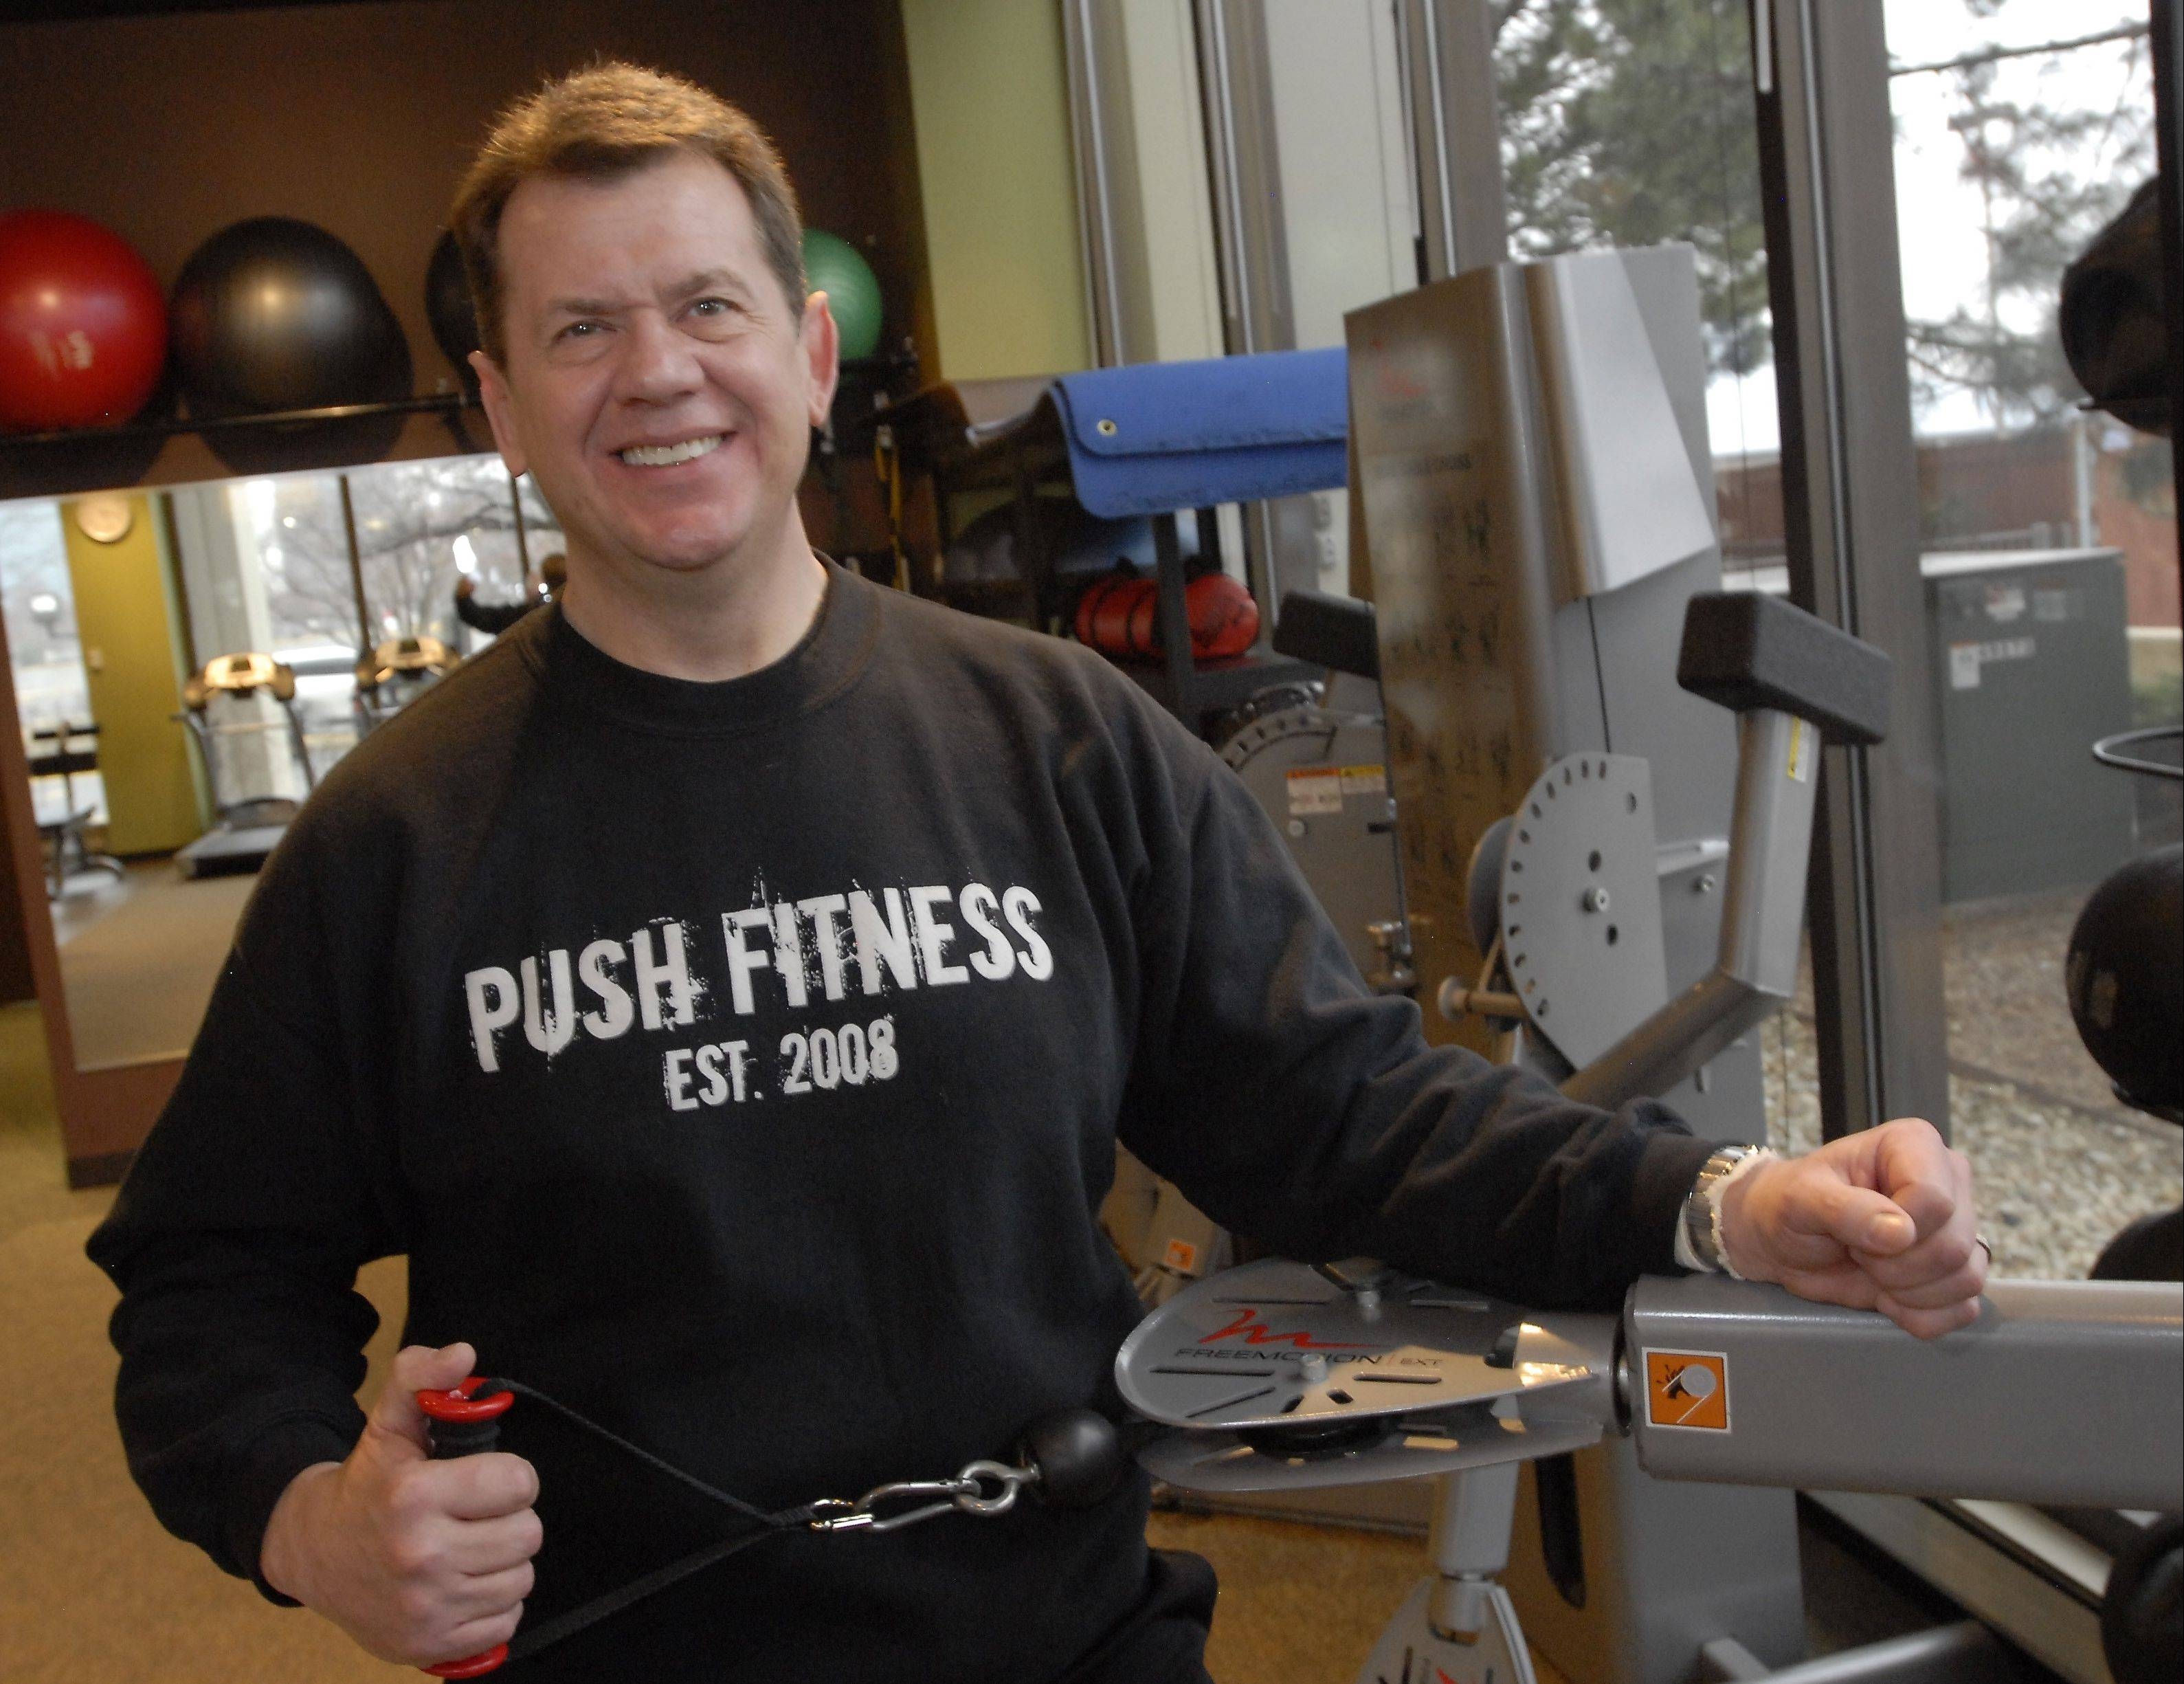 Push Fitness trainer George Gersch